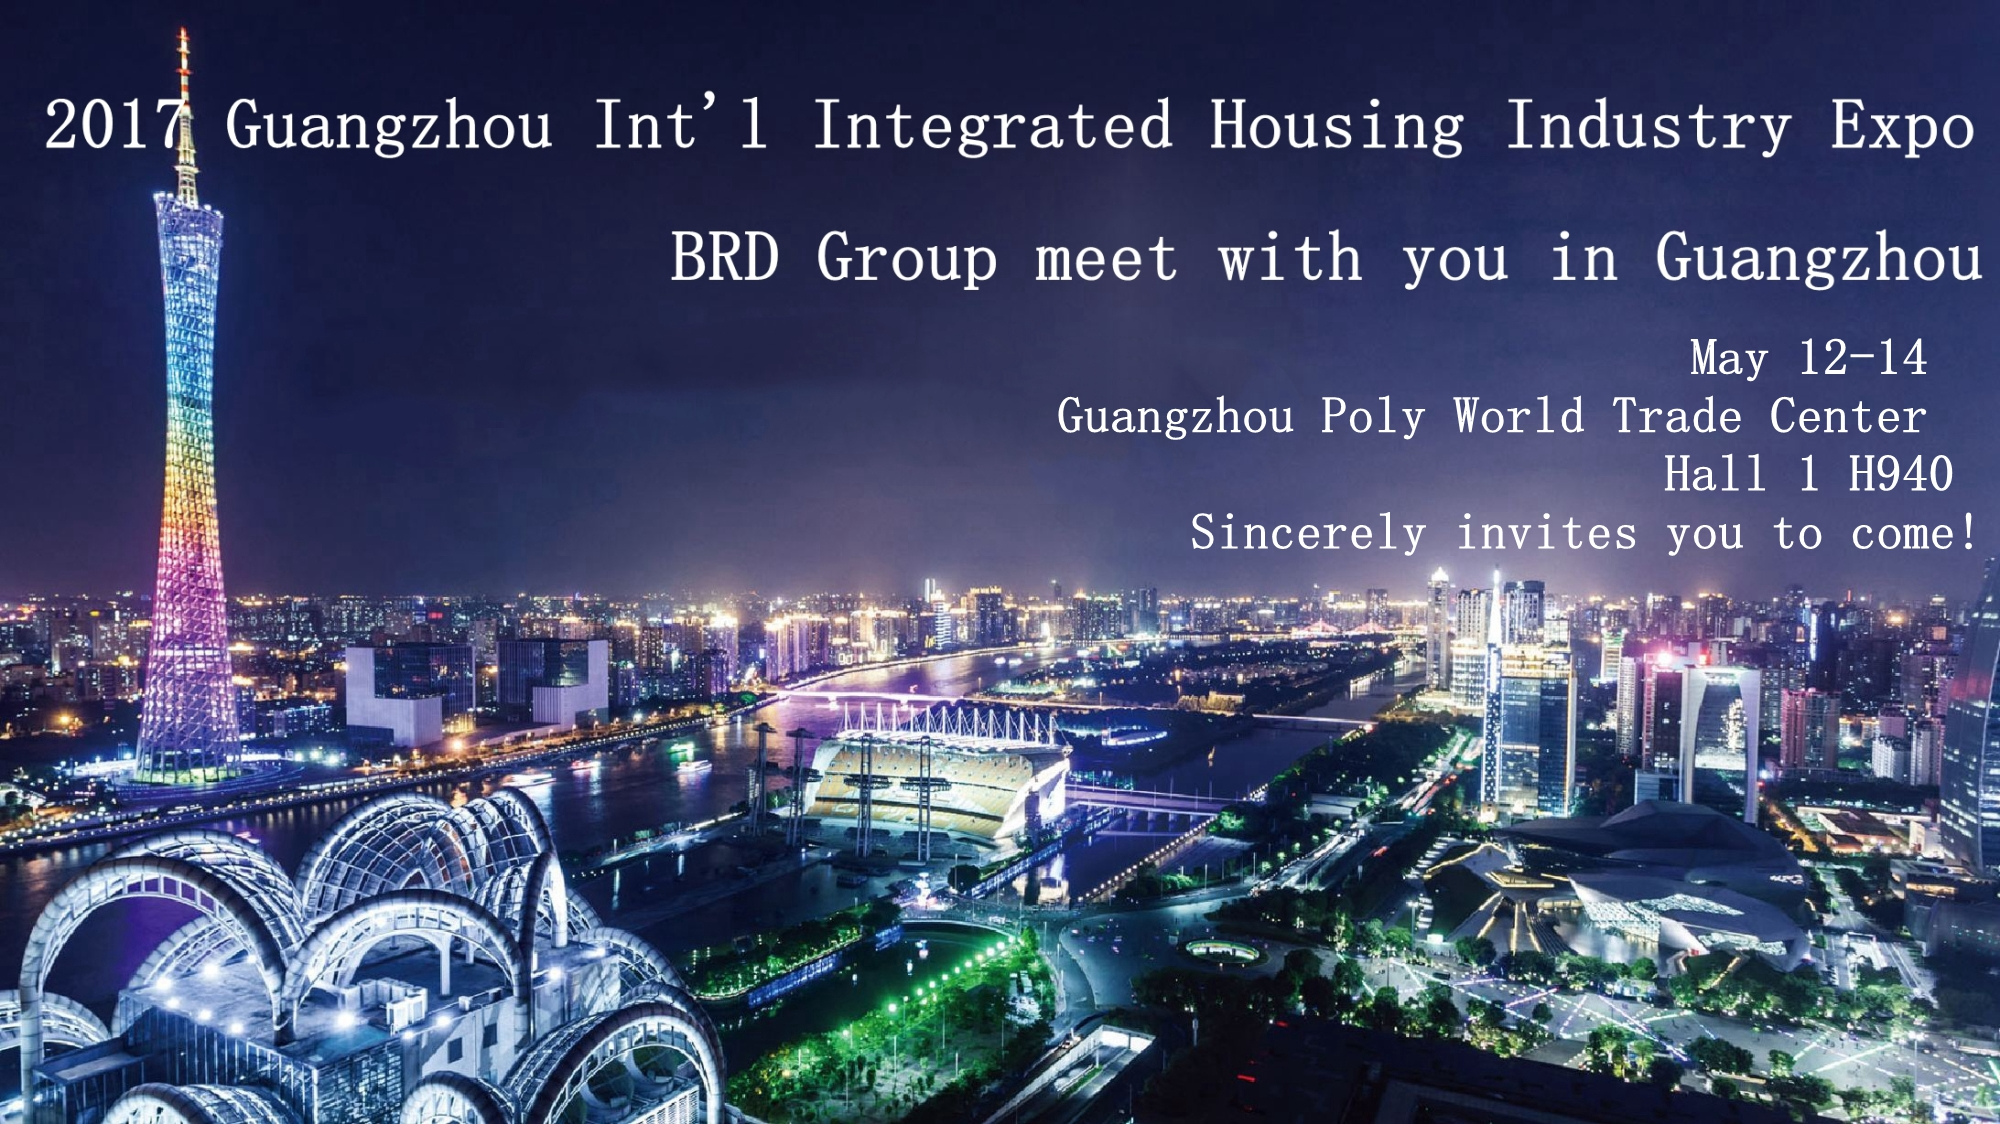 <b>2017 Guangzhou Int'l Integrated Housing Industry Expo, BRD meet with you!</b>